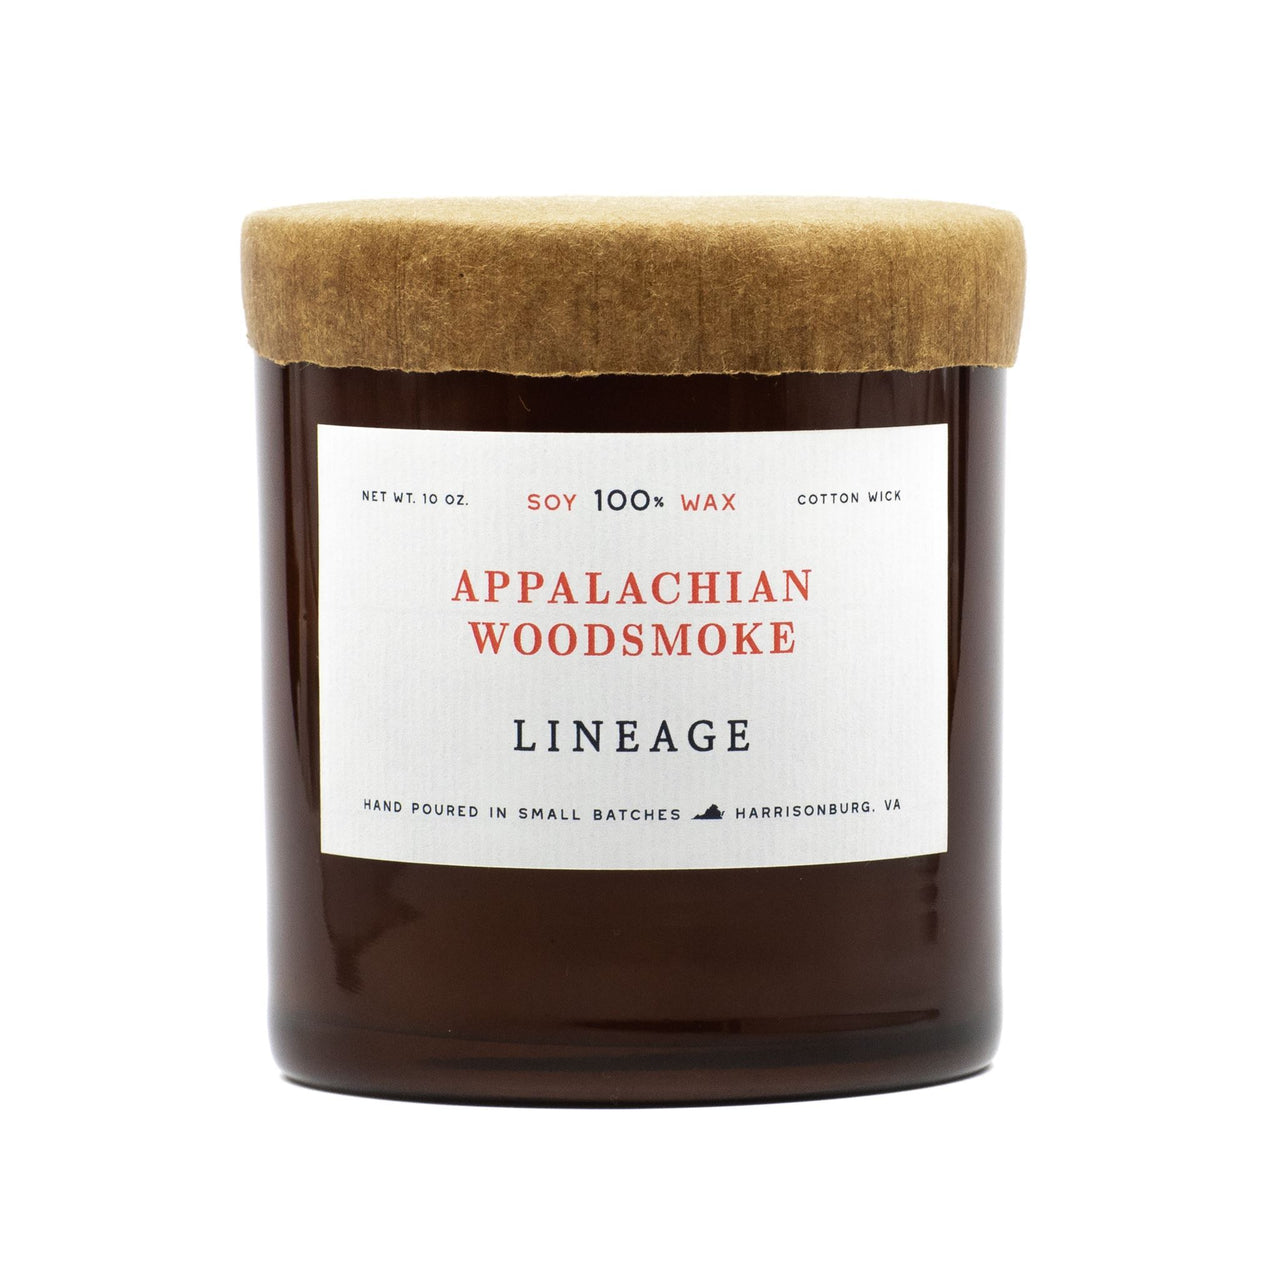 Appalachian Woodsmoke Soy Candle